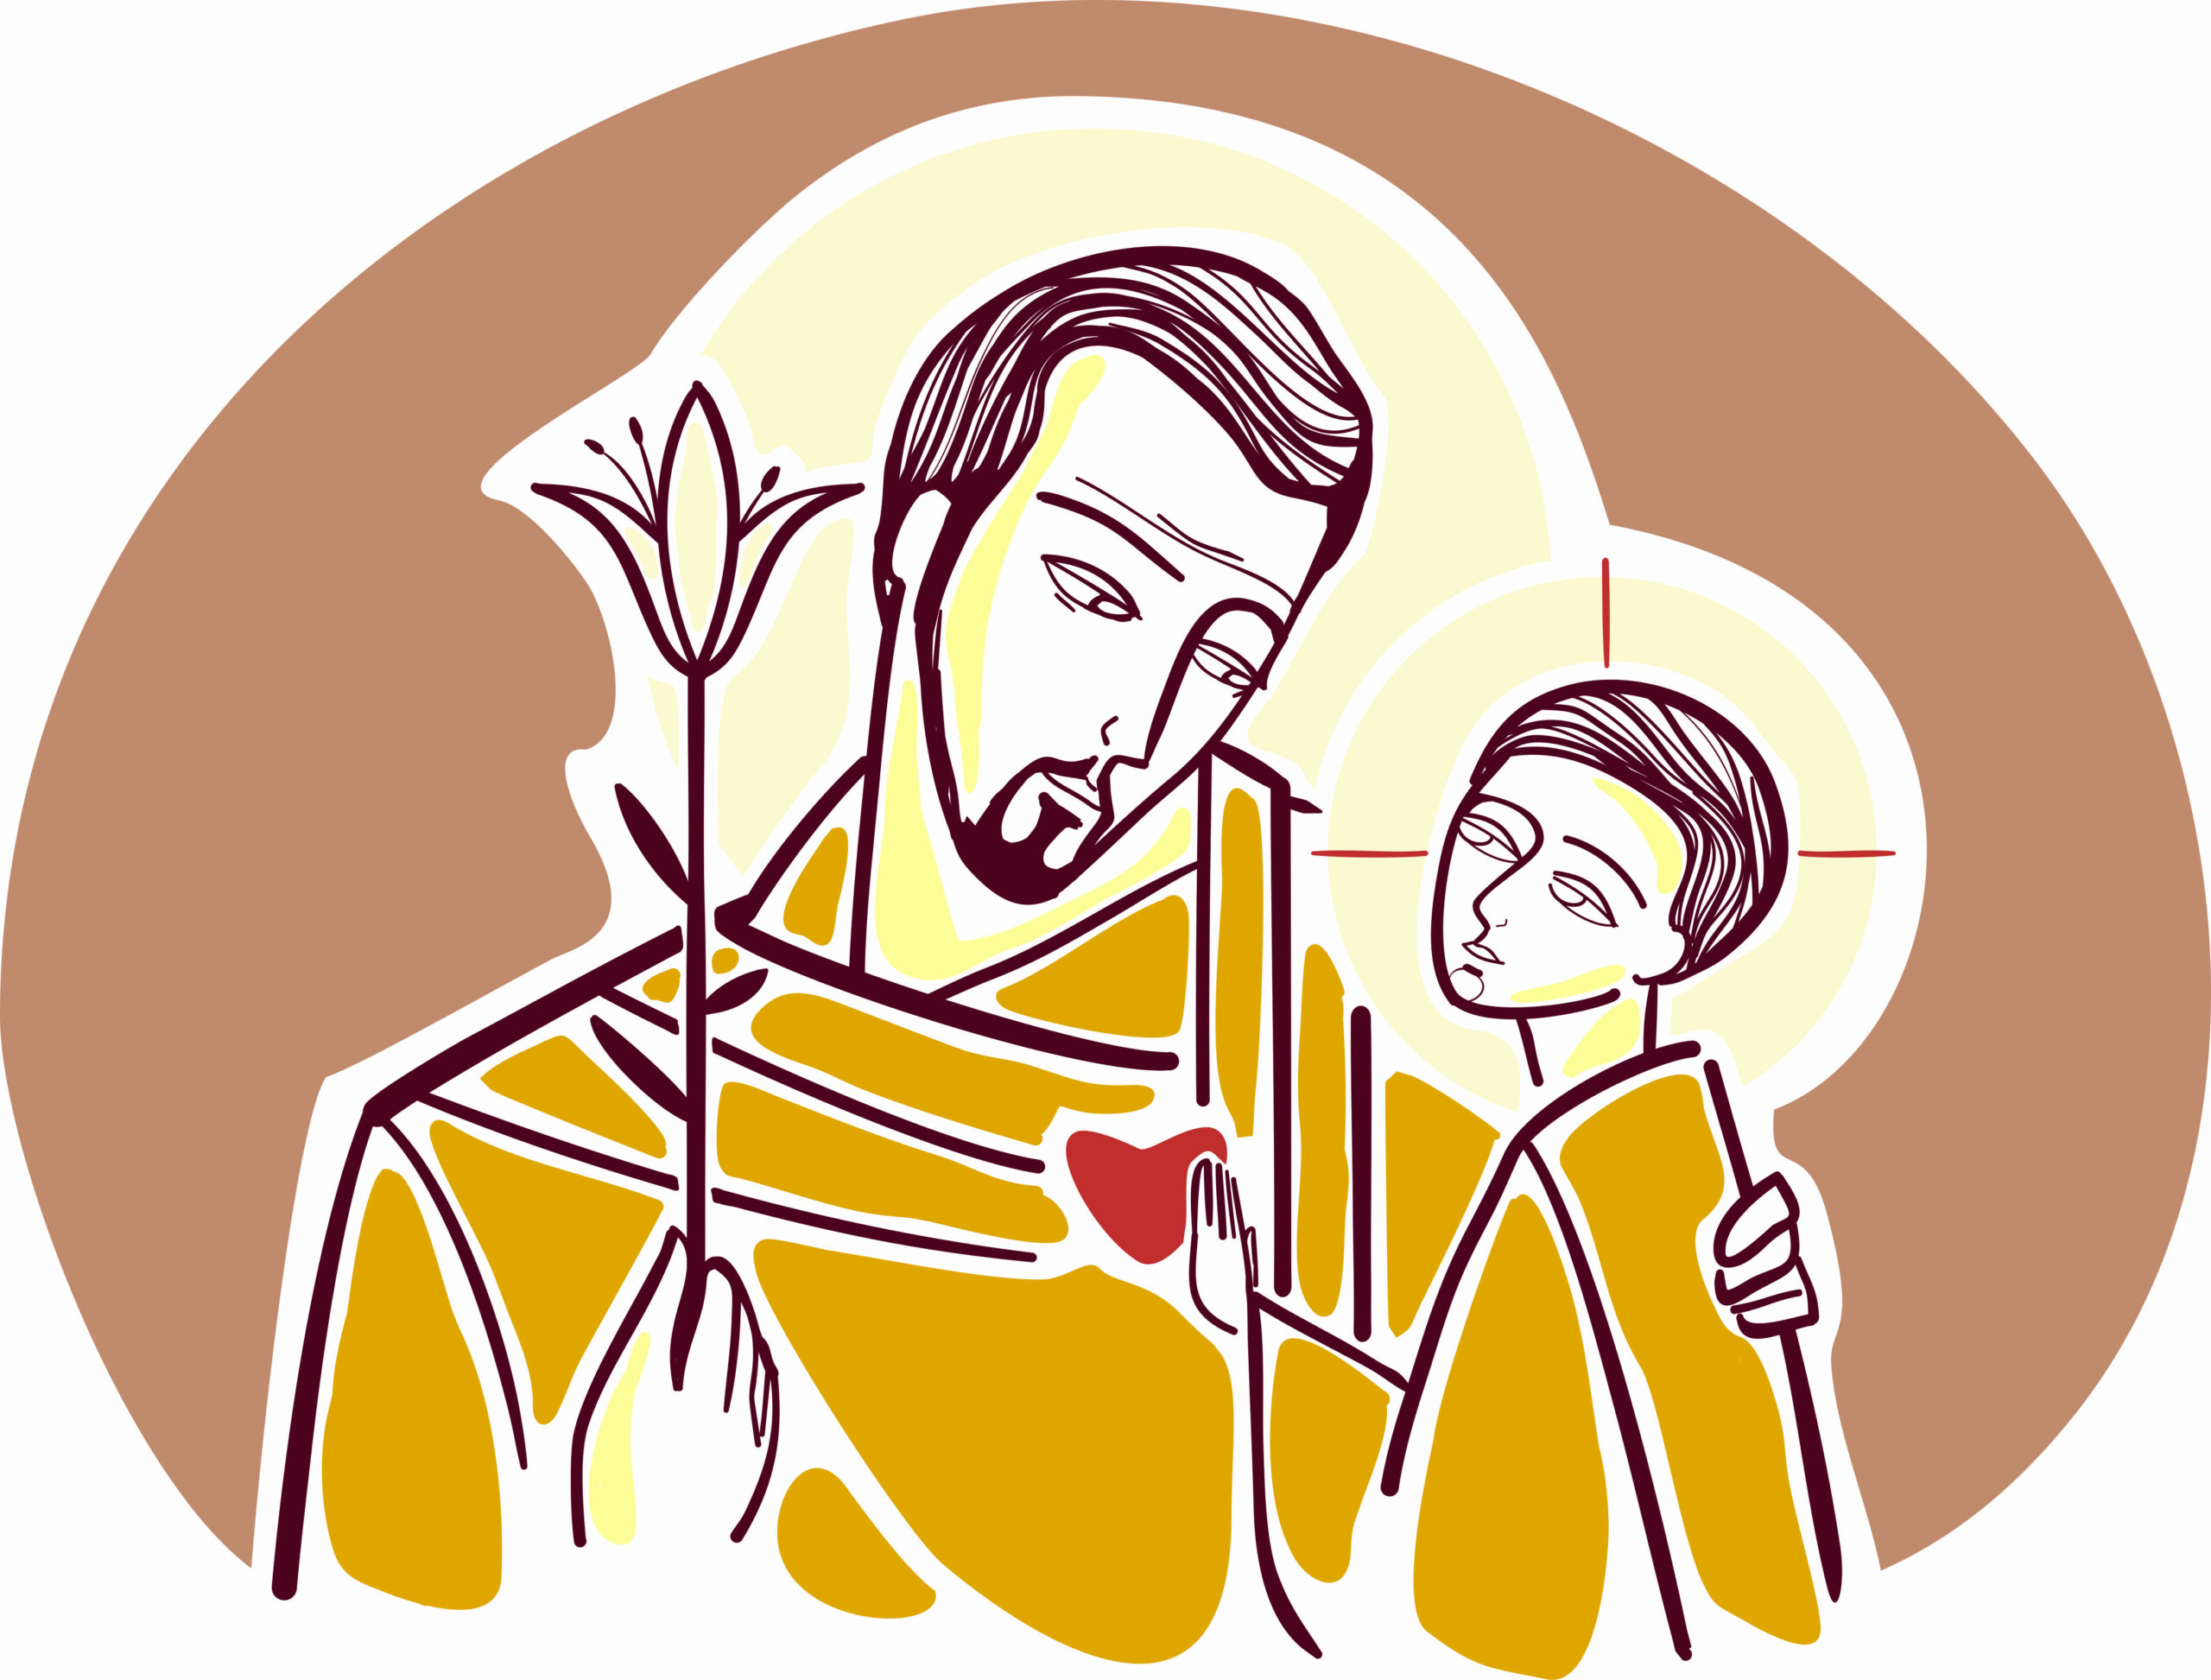 Saint Joseph, the adopted father of Jesus